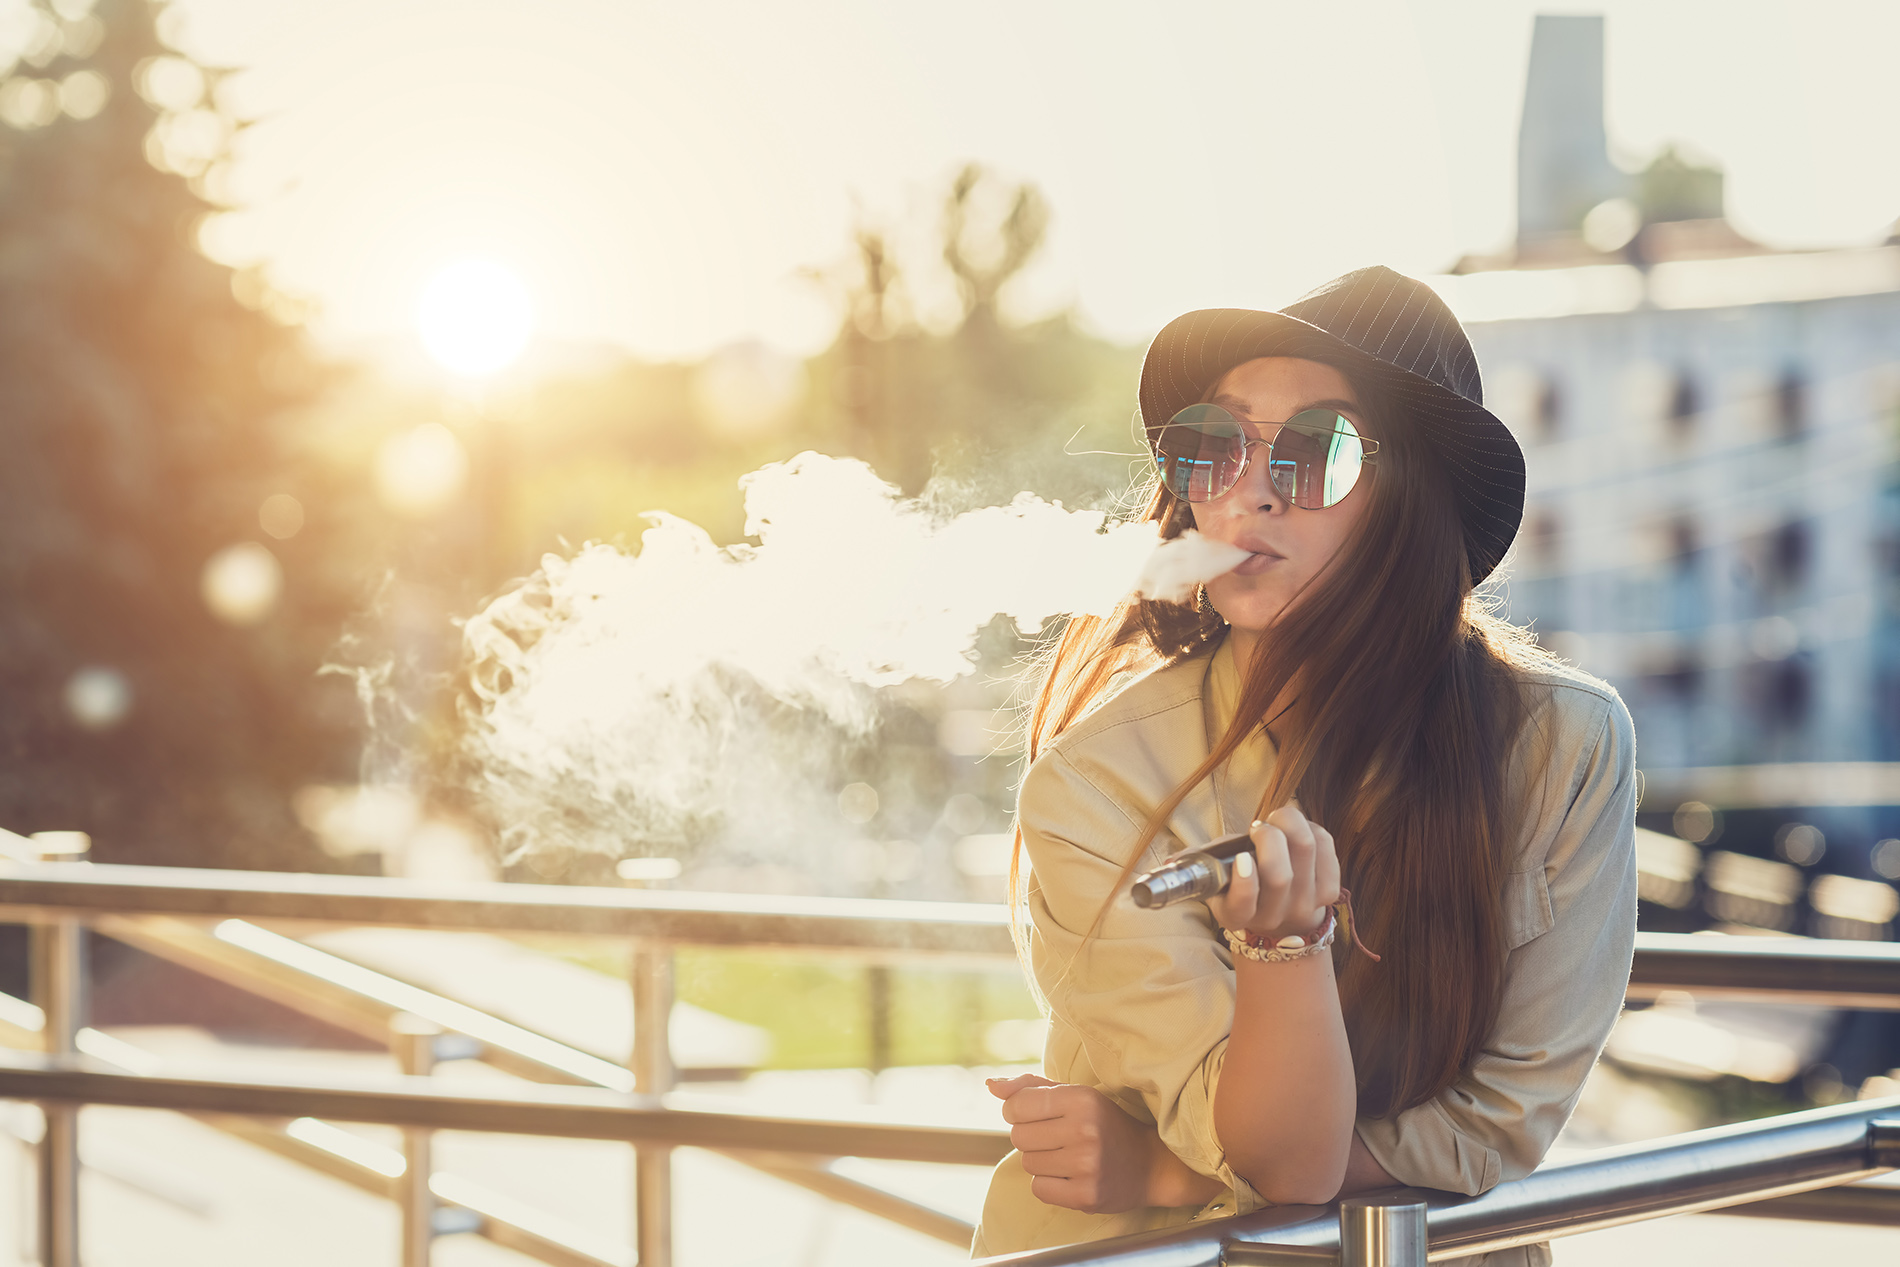 Young woman vaping outside